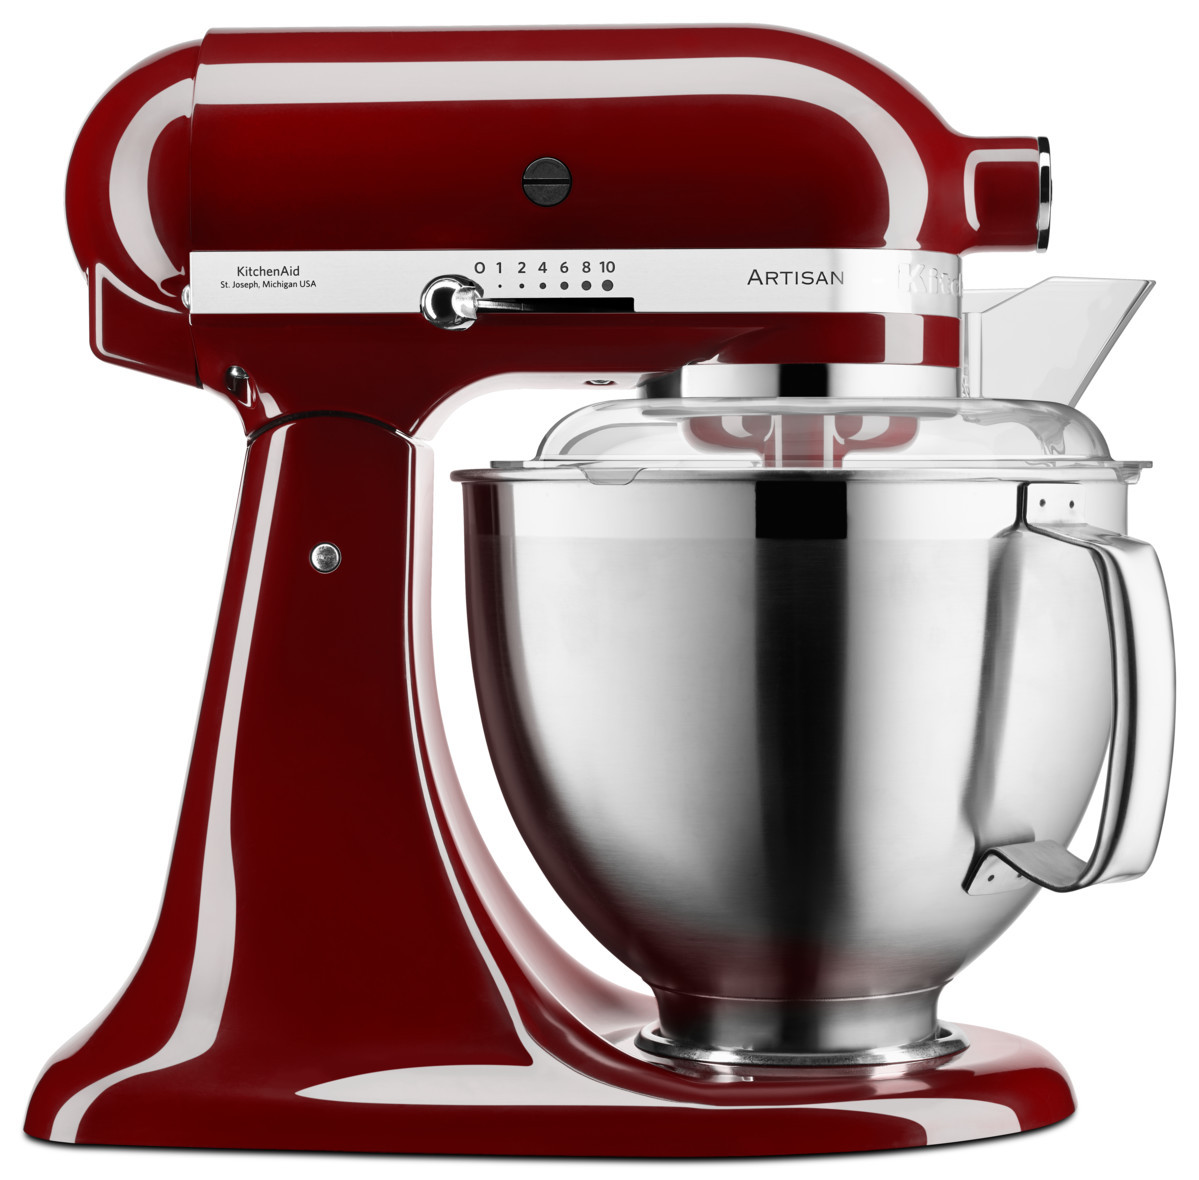 KitchenAid 5KSM185 Foodprocessor Set crimson red